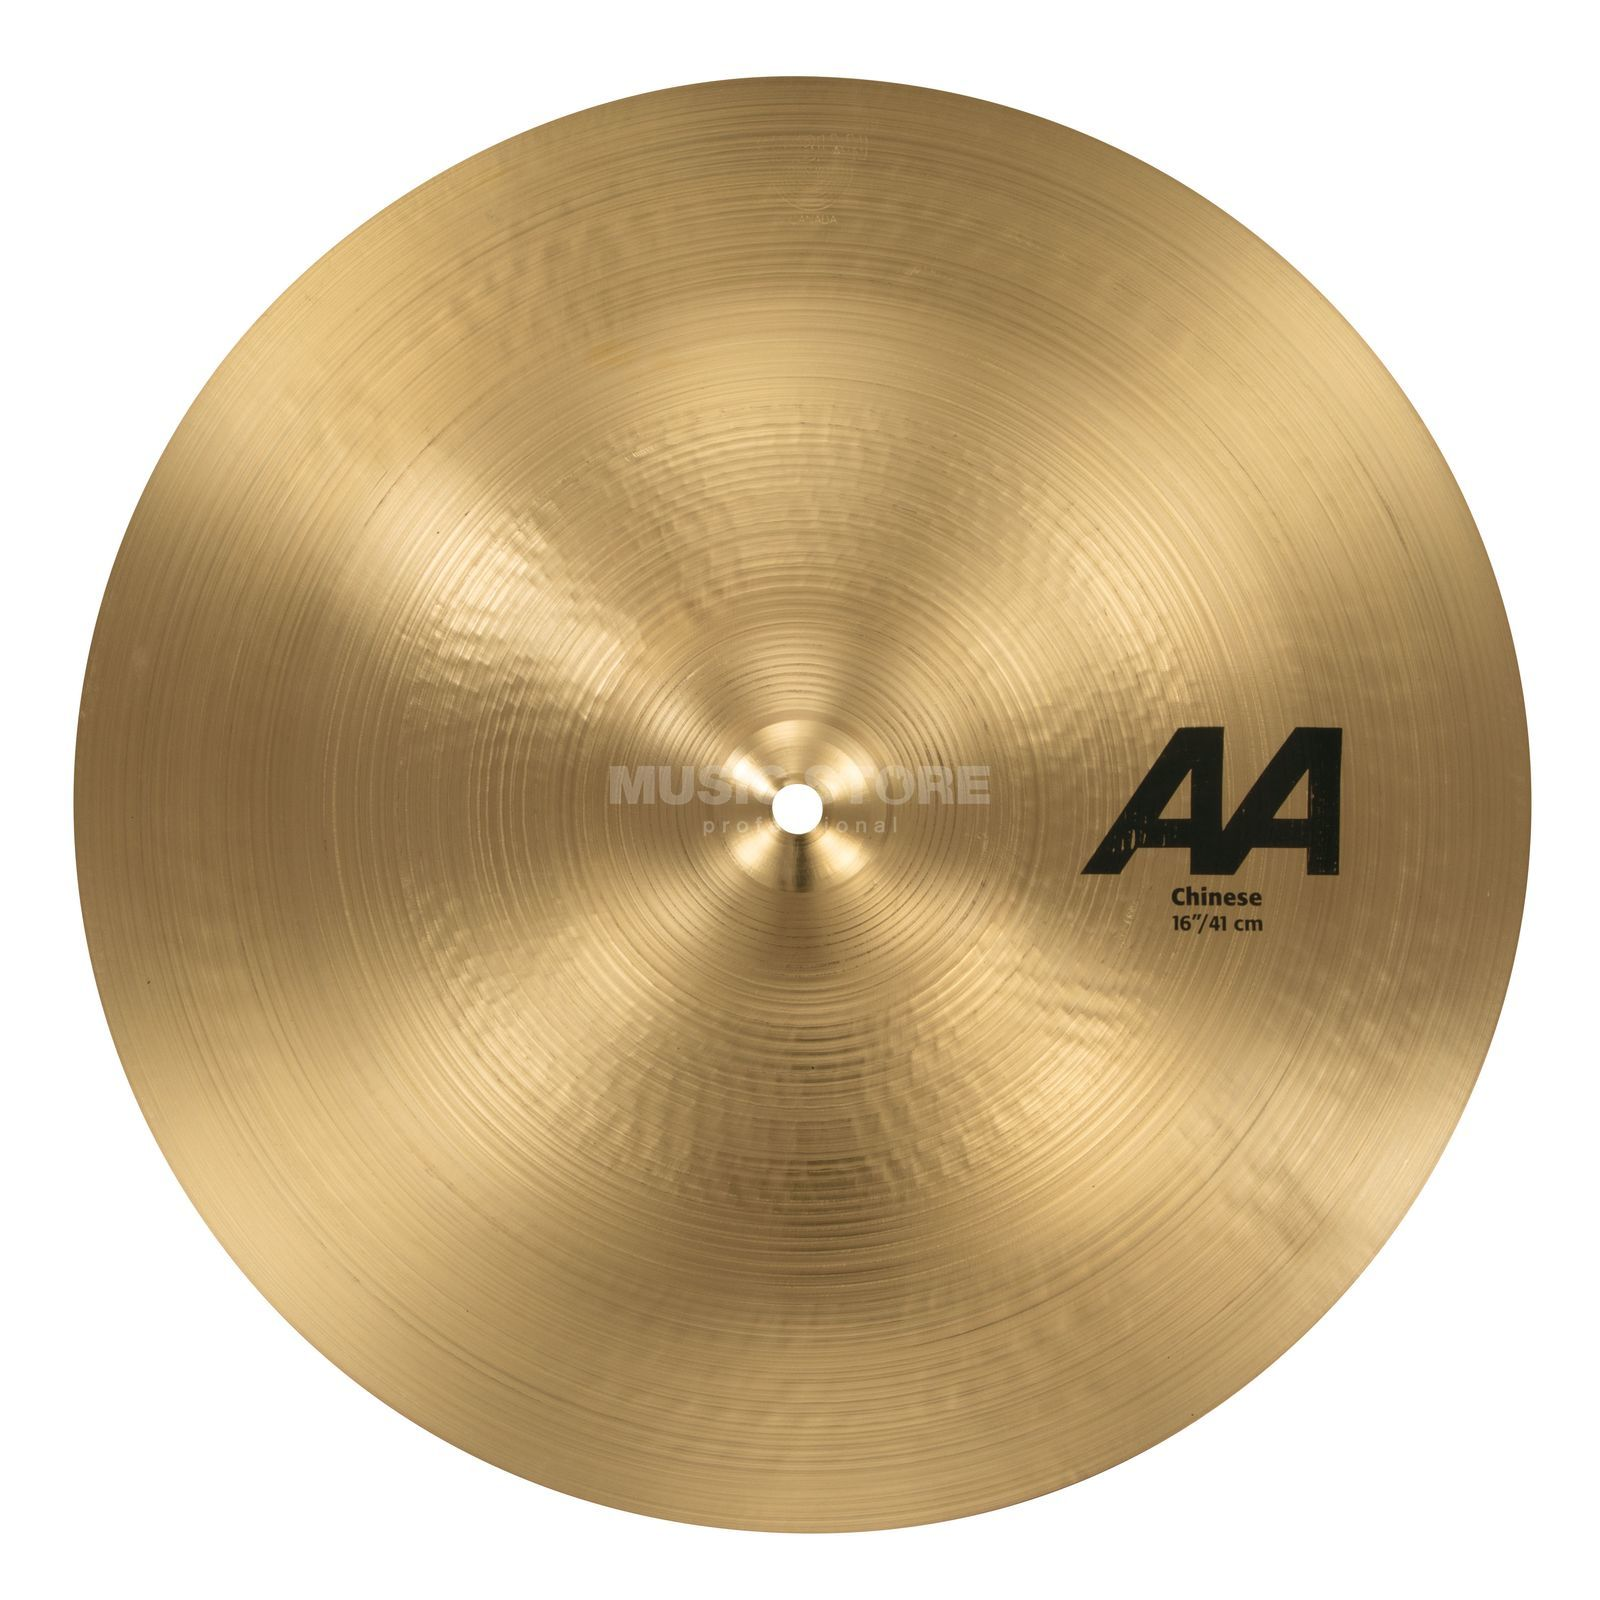 "Sabian AA China 16"" Brilliant Finish Productafbeelding"